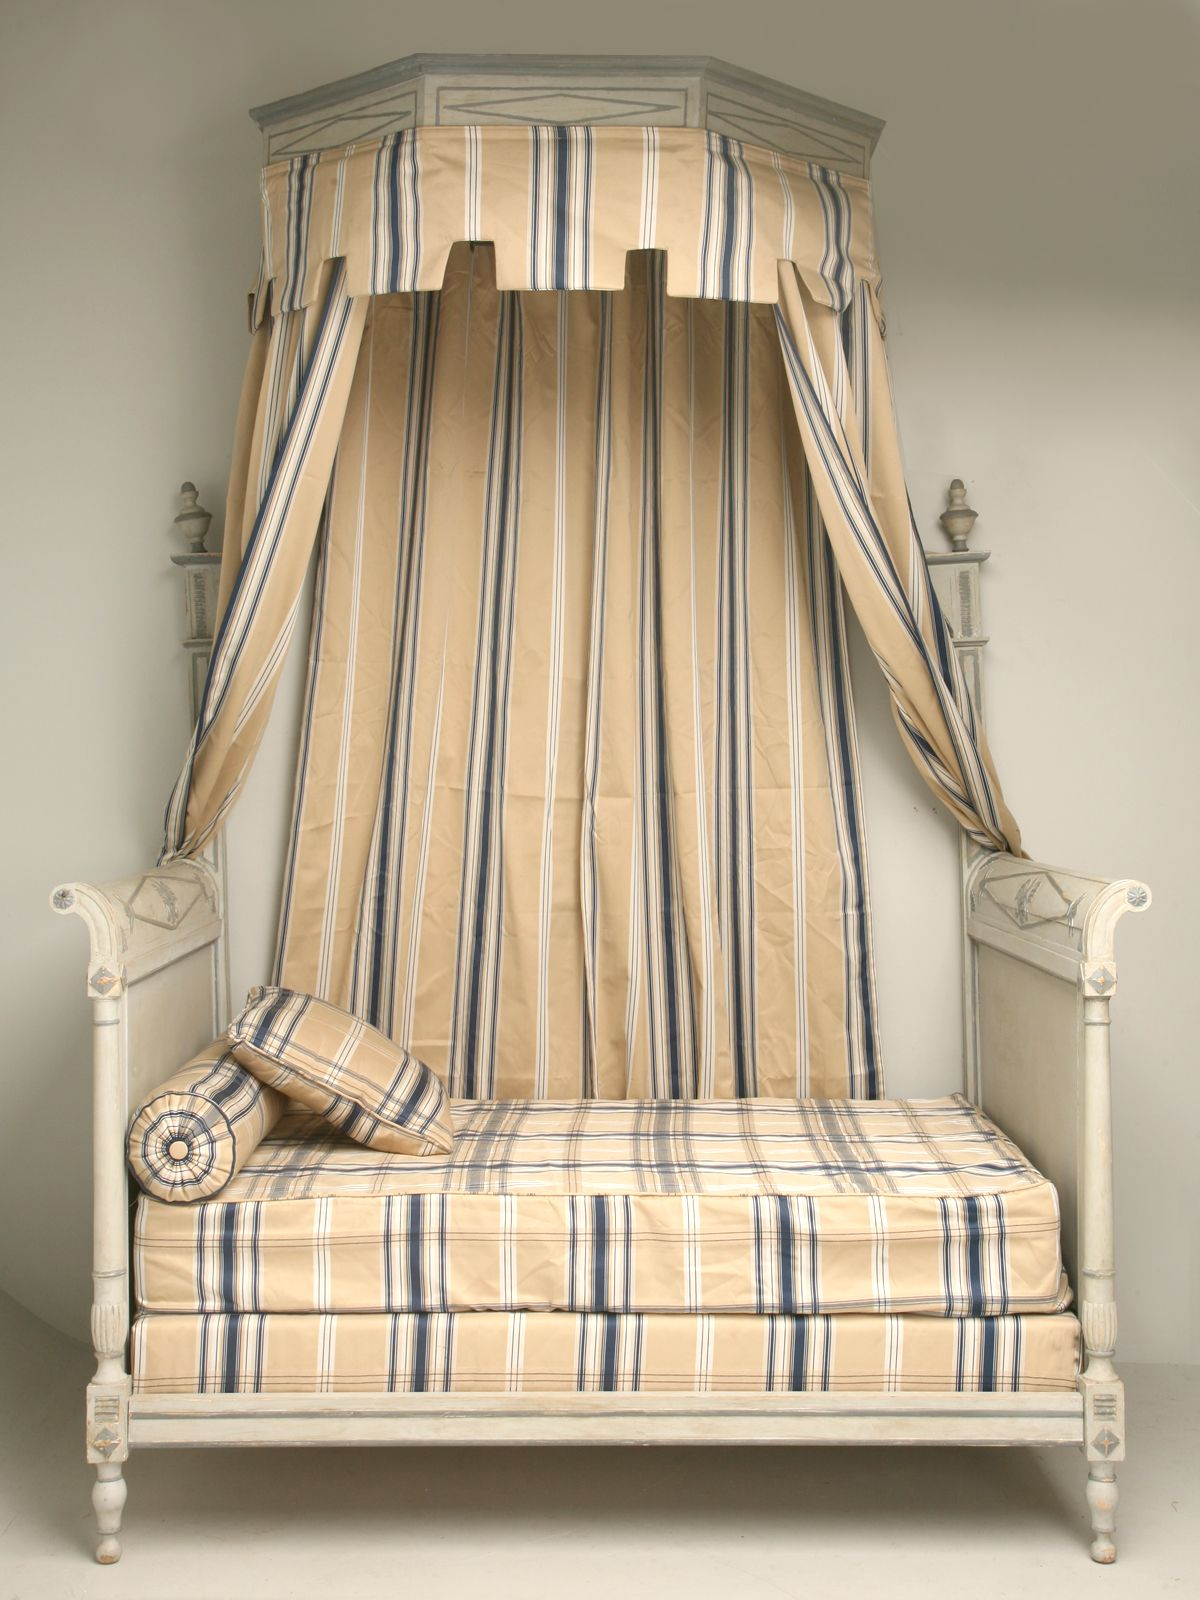 Antique French Directoire Style Canopy Bed From Old Plank